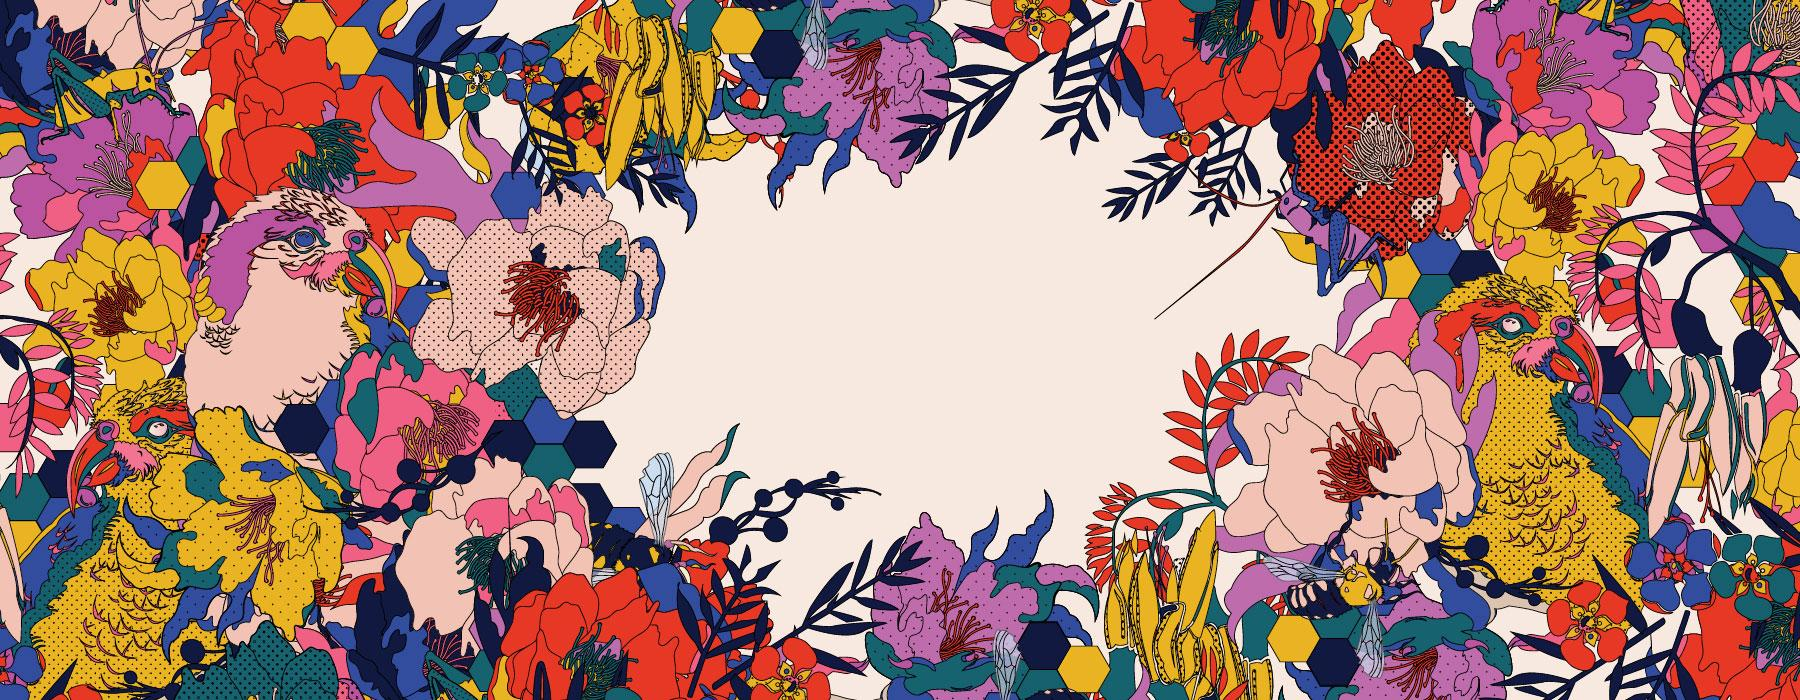 Flowers and birds design, 2018. Created by Chloe Reweti. Te Papa